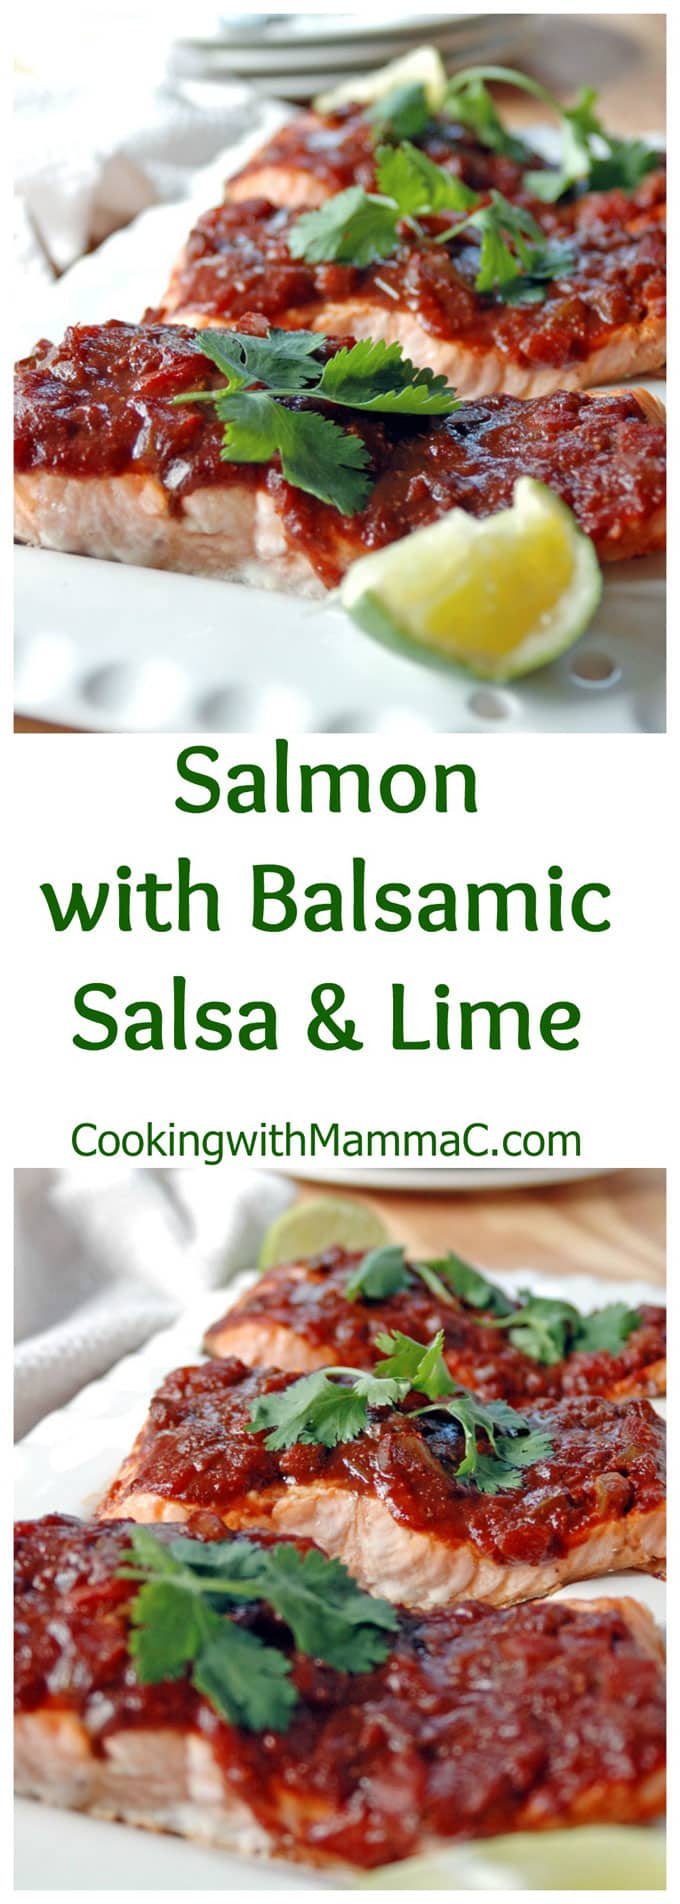 Salmon with Balsamic Salsa and Lime is so easy and packed with flavor! Add Tex-Mex accents to store-bought salsa for a tasty sauce. Ready in 25 minutes and gluten free!